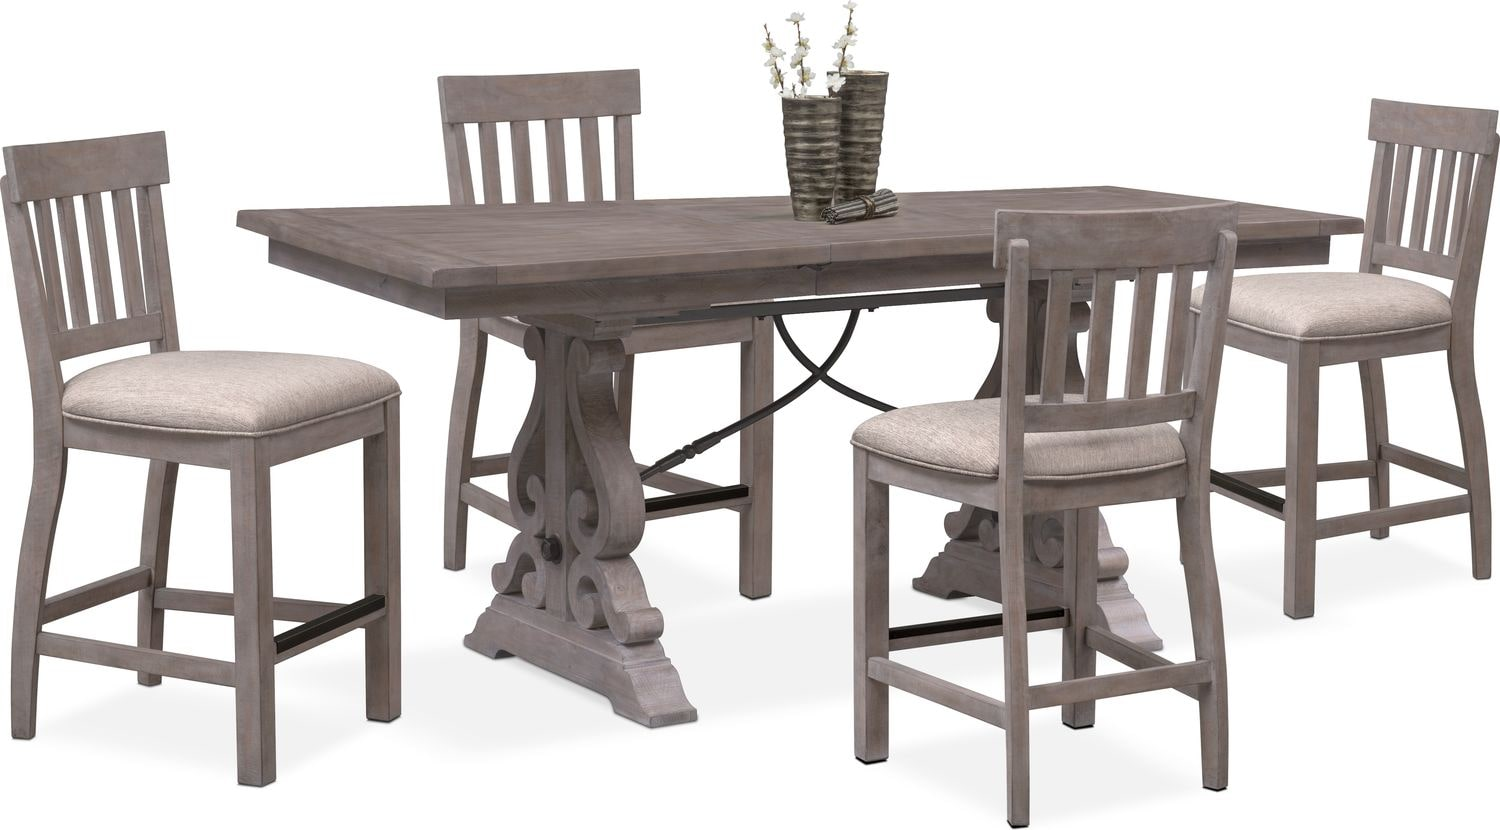 Charthouse Counter Height Dining Table And 4 Stools   Gray